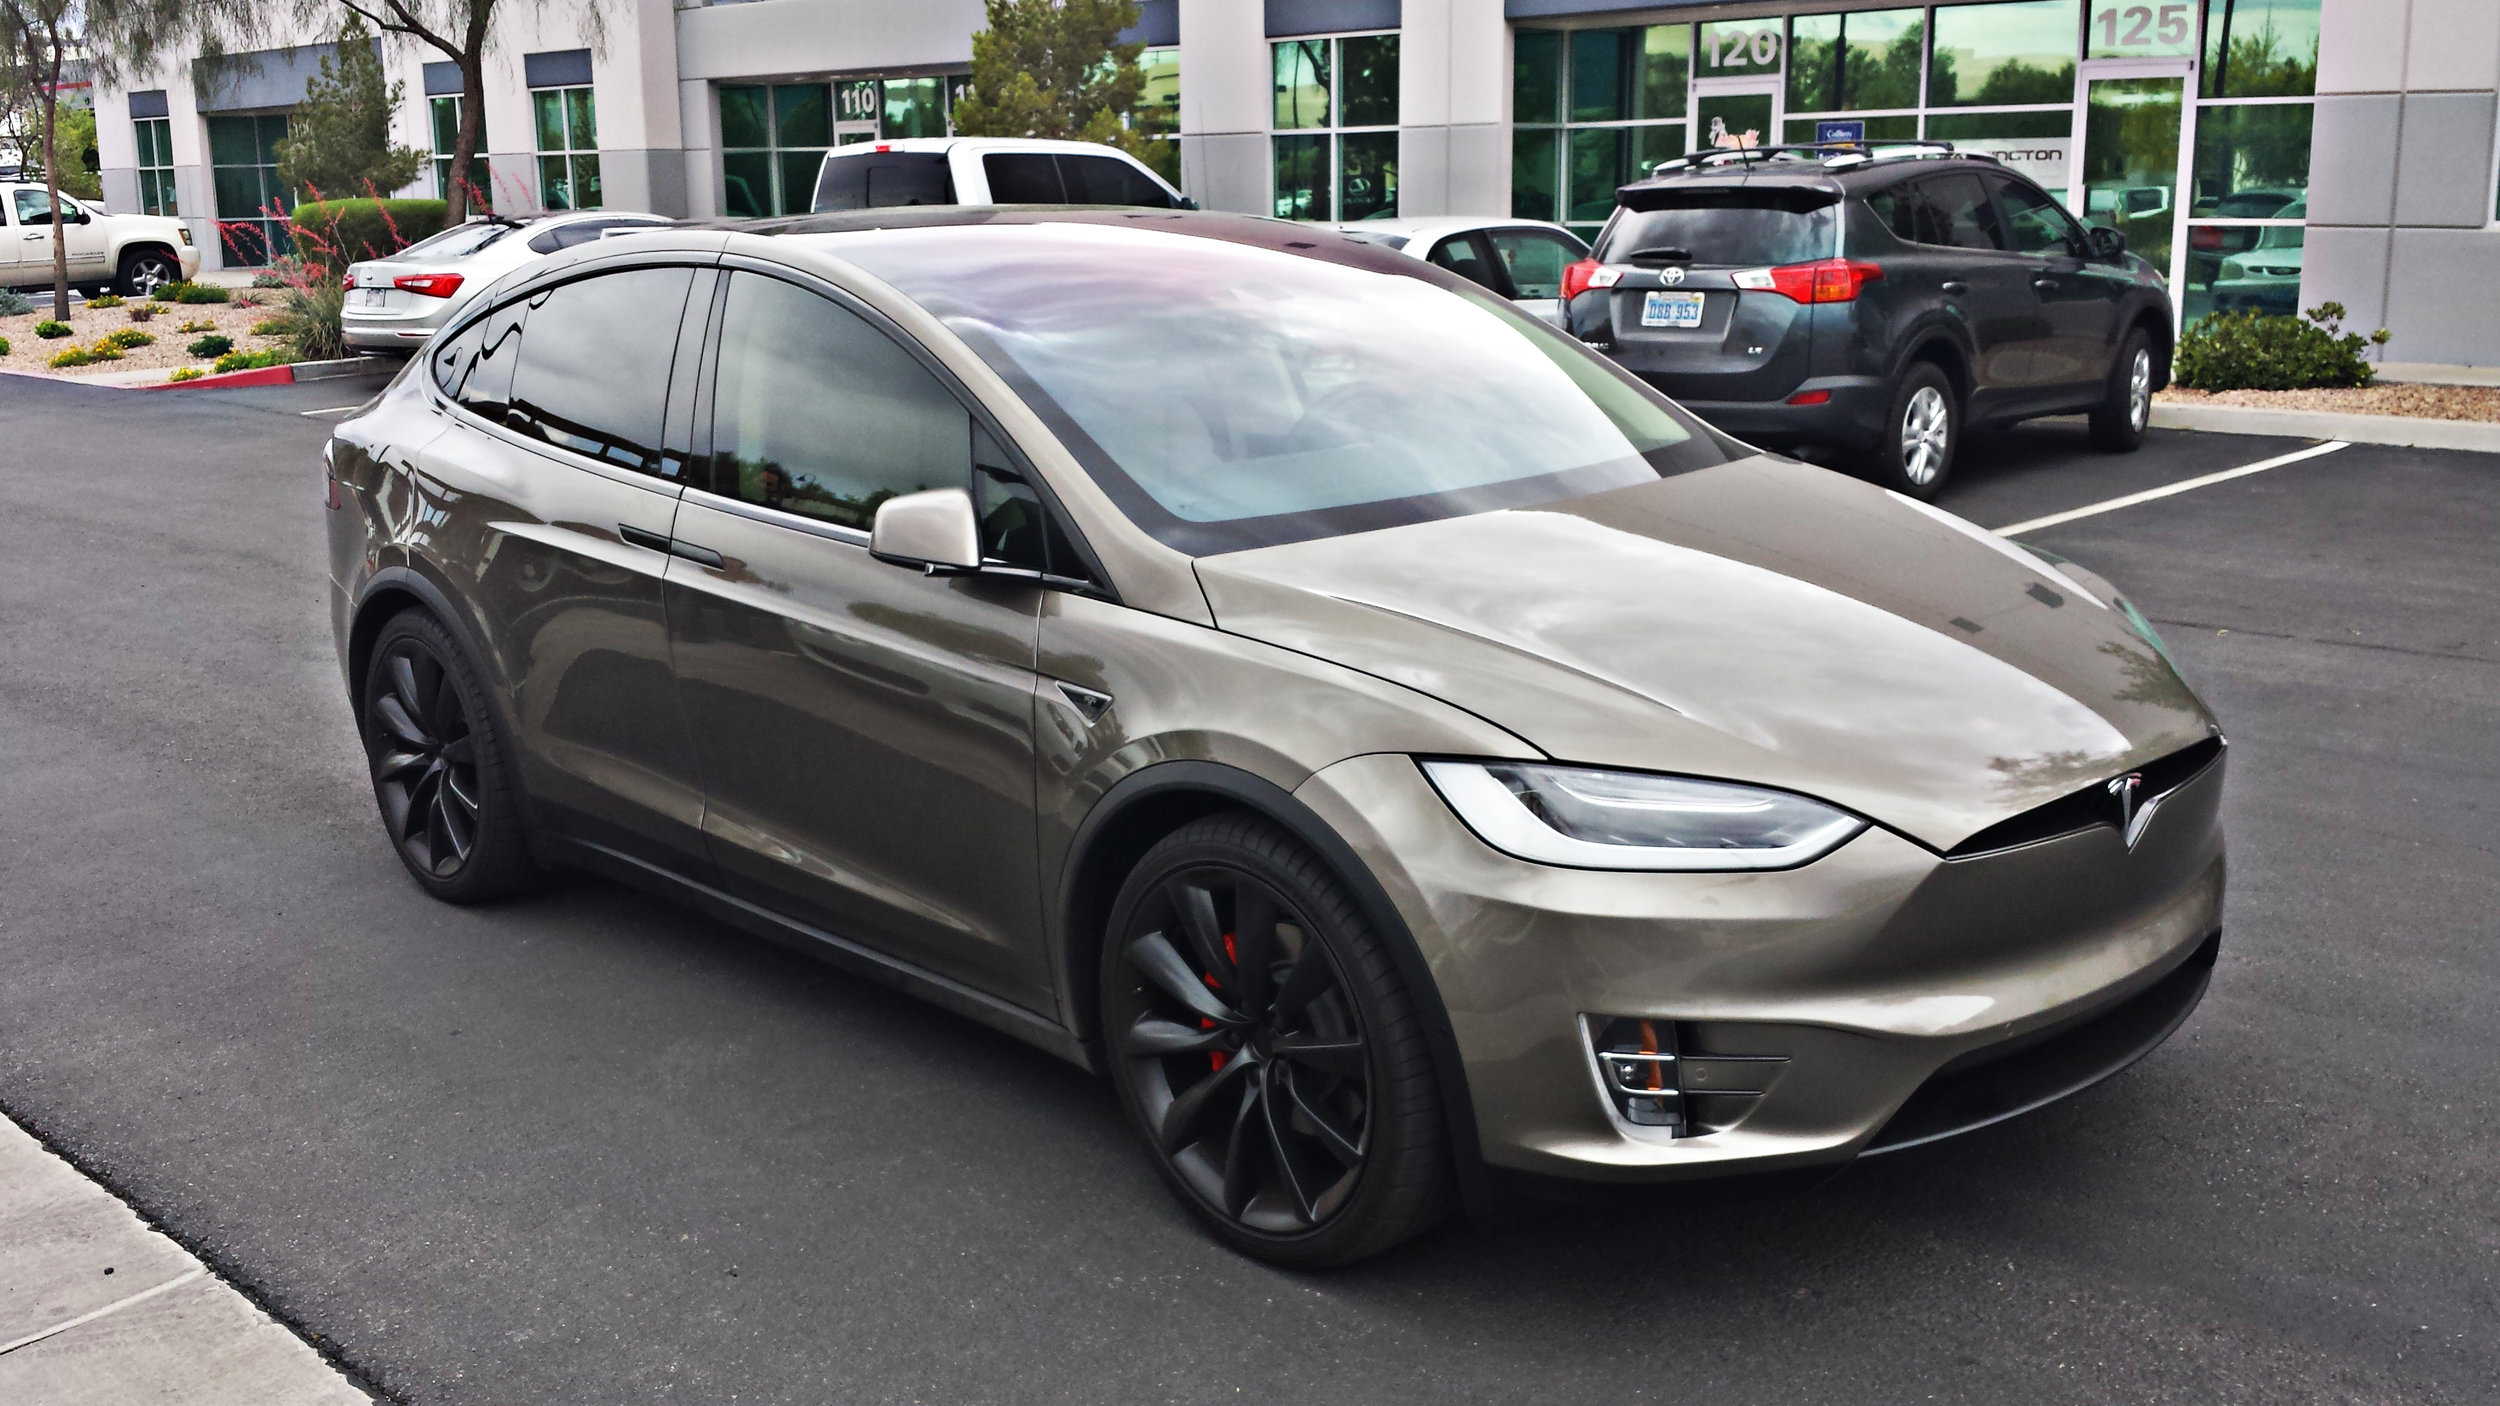 Tesla Model X - Black Metallic Chrome Delete